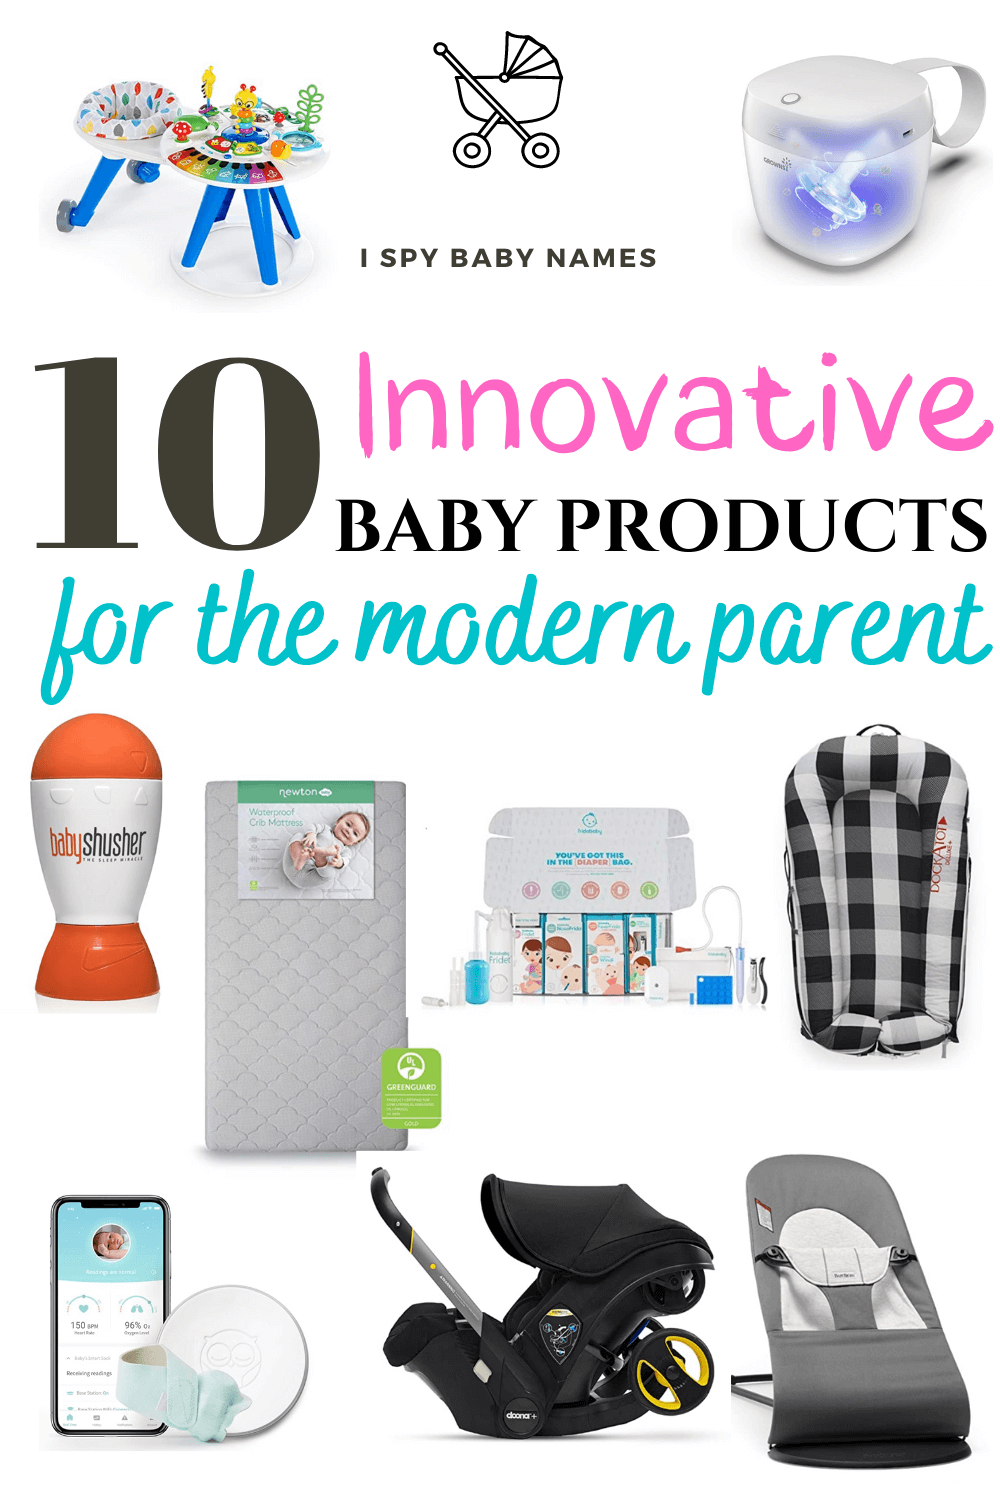 10 Innovative Baby Products for the Modern Parent